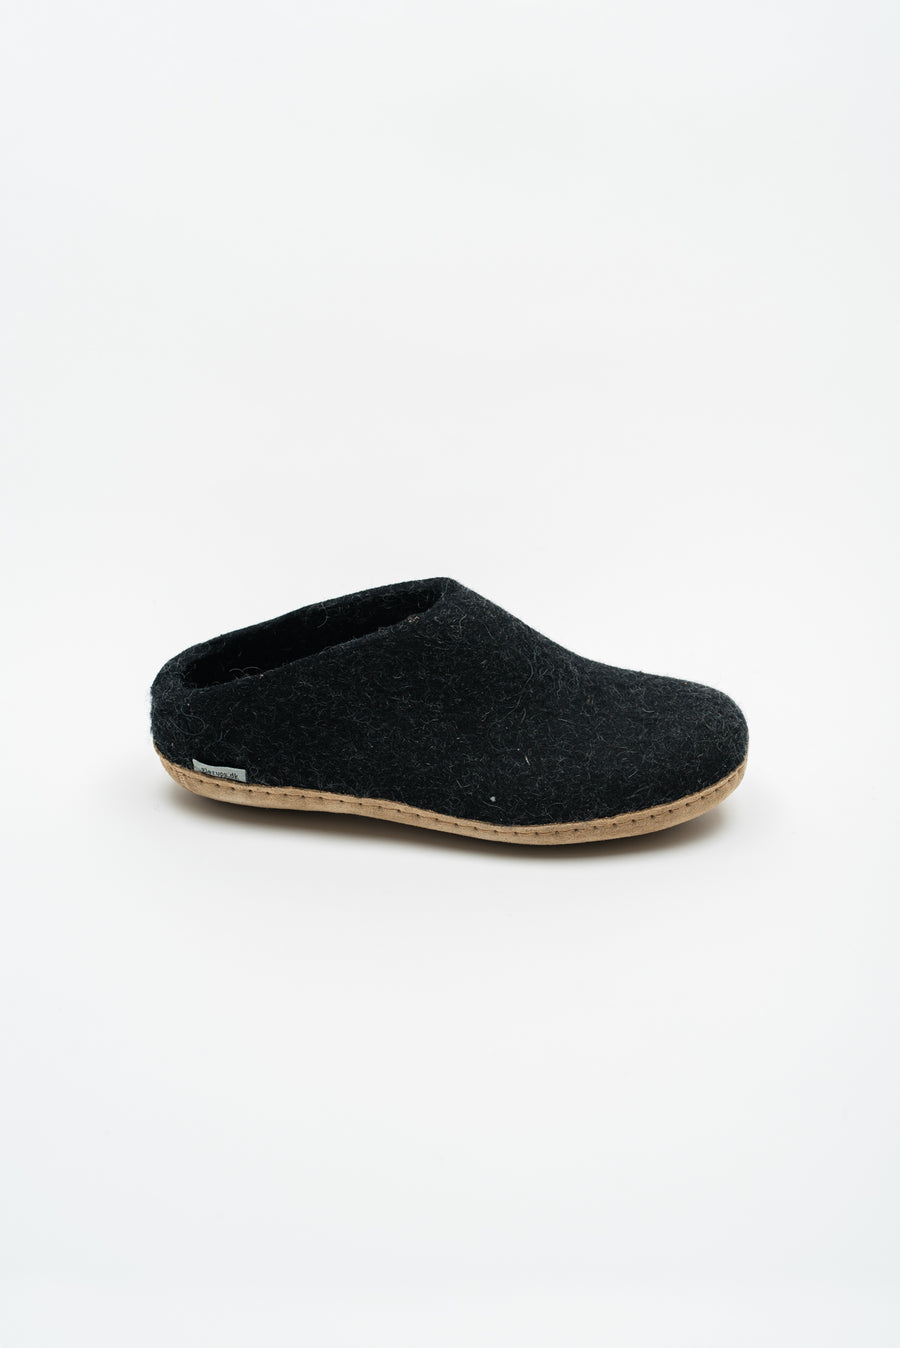 Open Heel Slipper - Charcoal